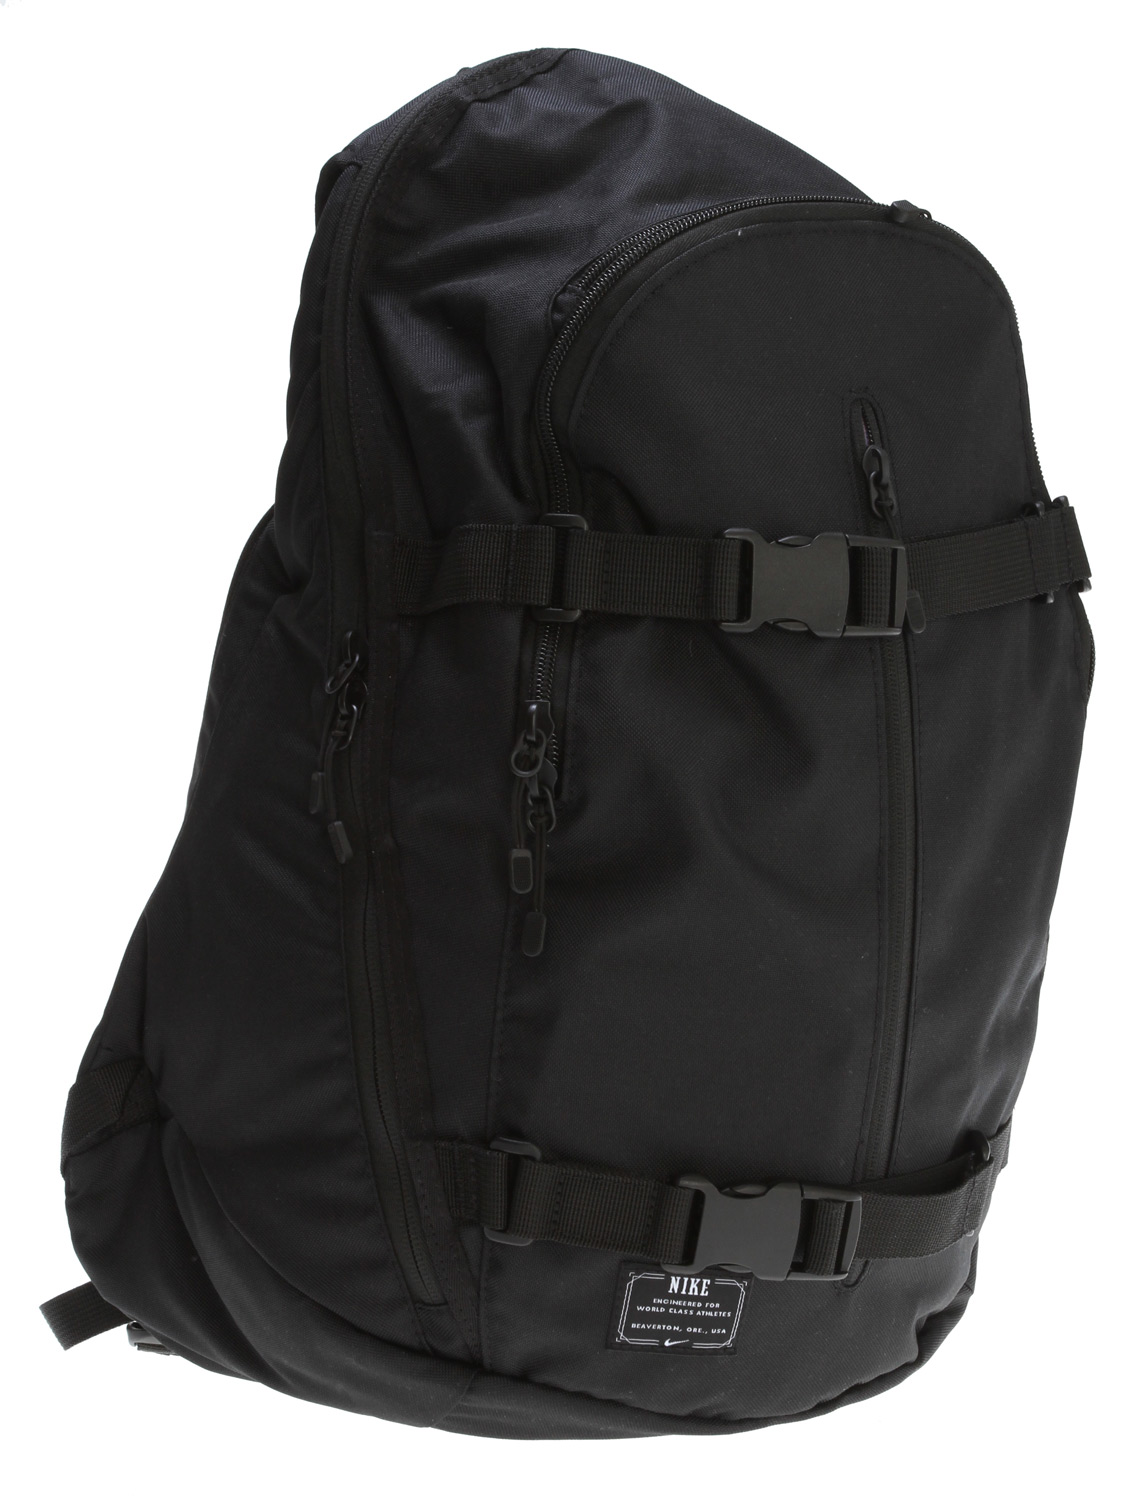 Skateboard Key Features of the Nike Hi Backpack: Recycled main body material Dual-zippered main compartment Heavy-duty zippers Easy-access zip pocket Convenient haul loop Cushioned backpanel Padded shoulder straps Adjustable sternum strap Interior mesh pocket Laptop sleeve Embroidered 6.0 branding. - $34.95